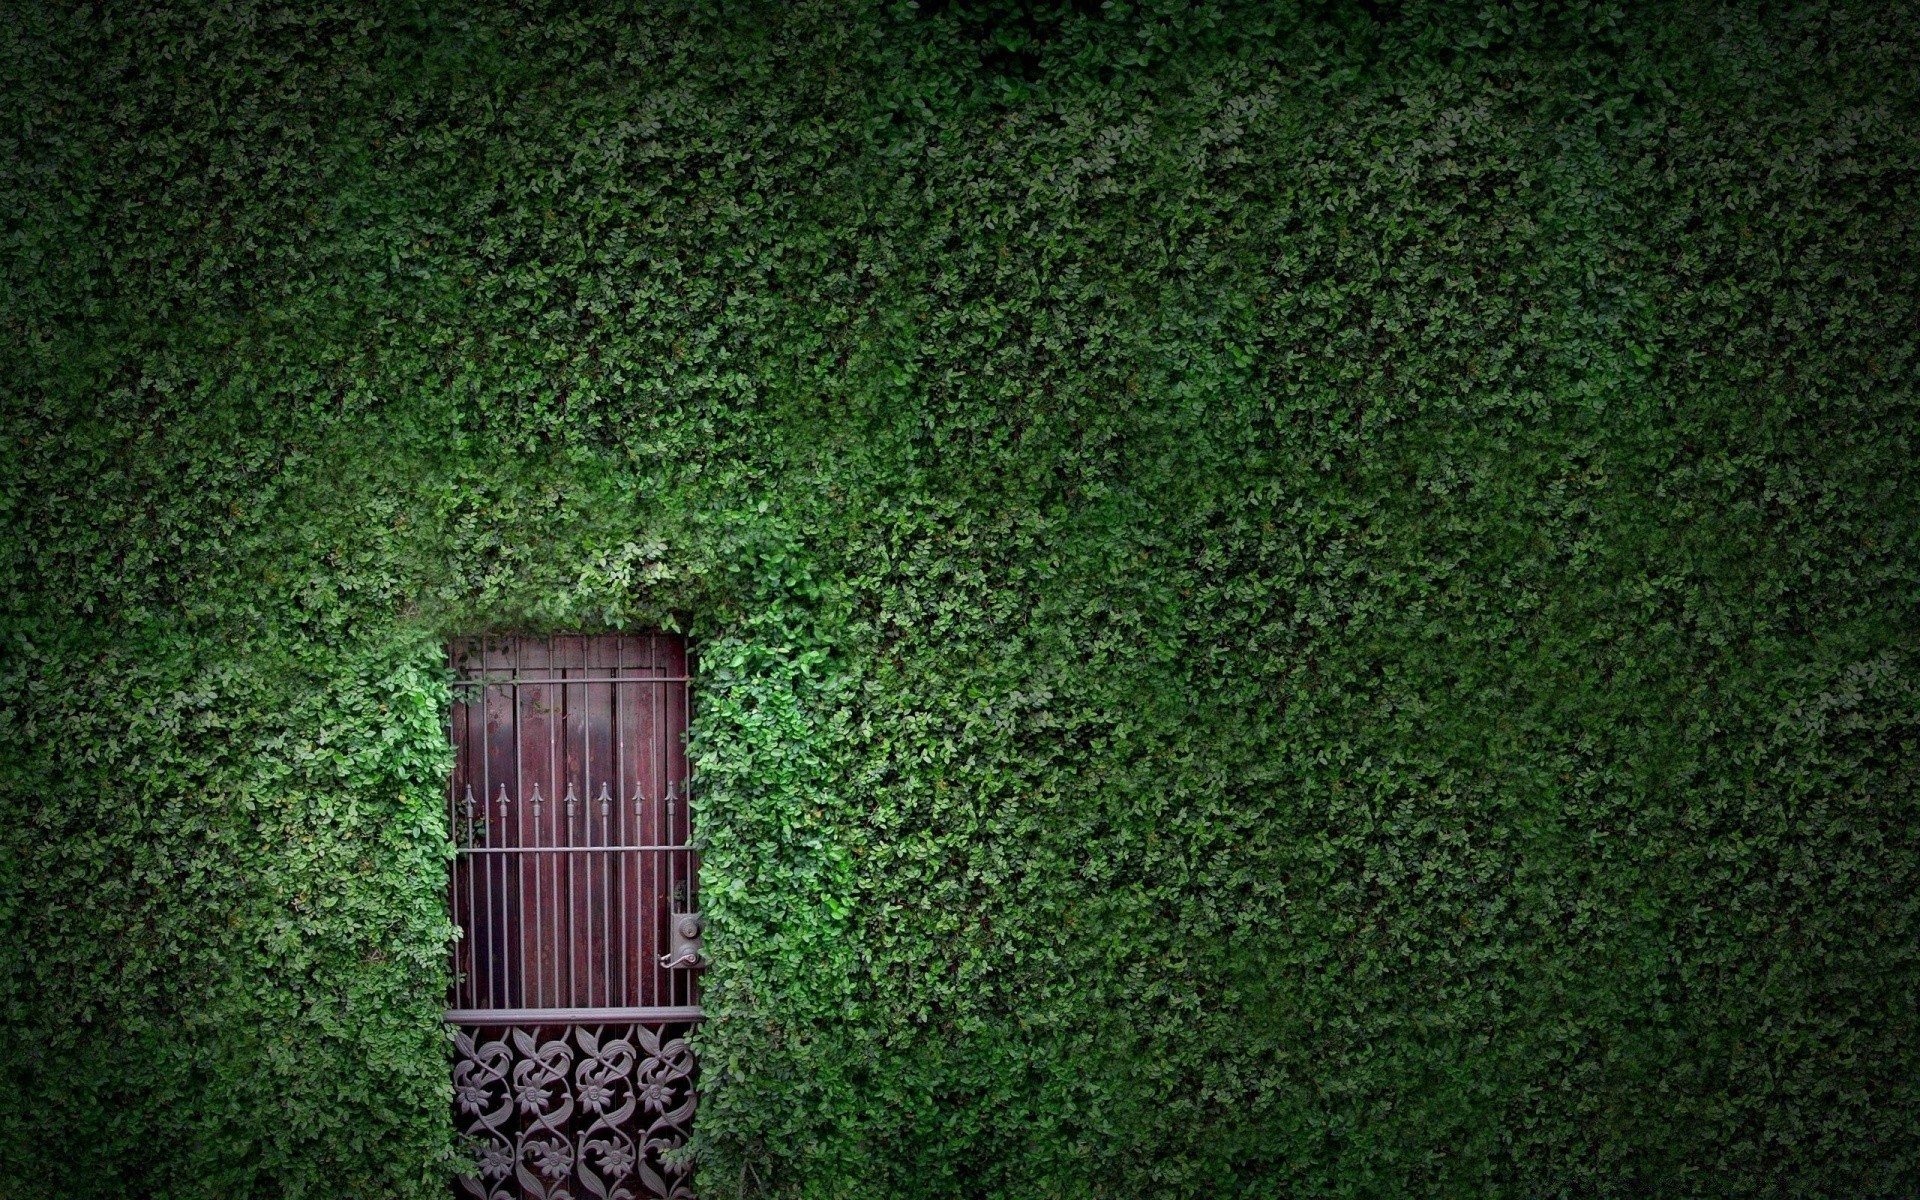 house and comfort desktop ivy texture wall wood old pattern construction architecture background house garden design leaf wallpaper color rough